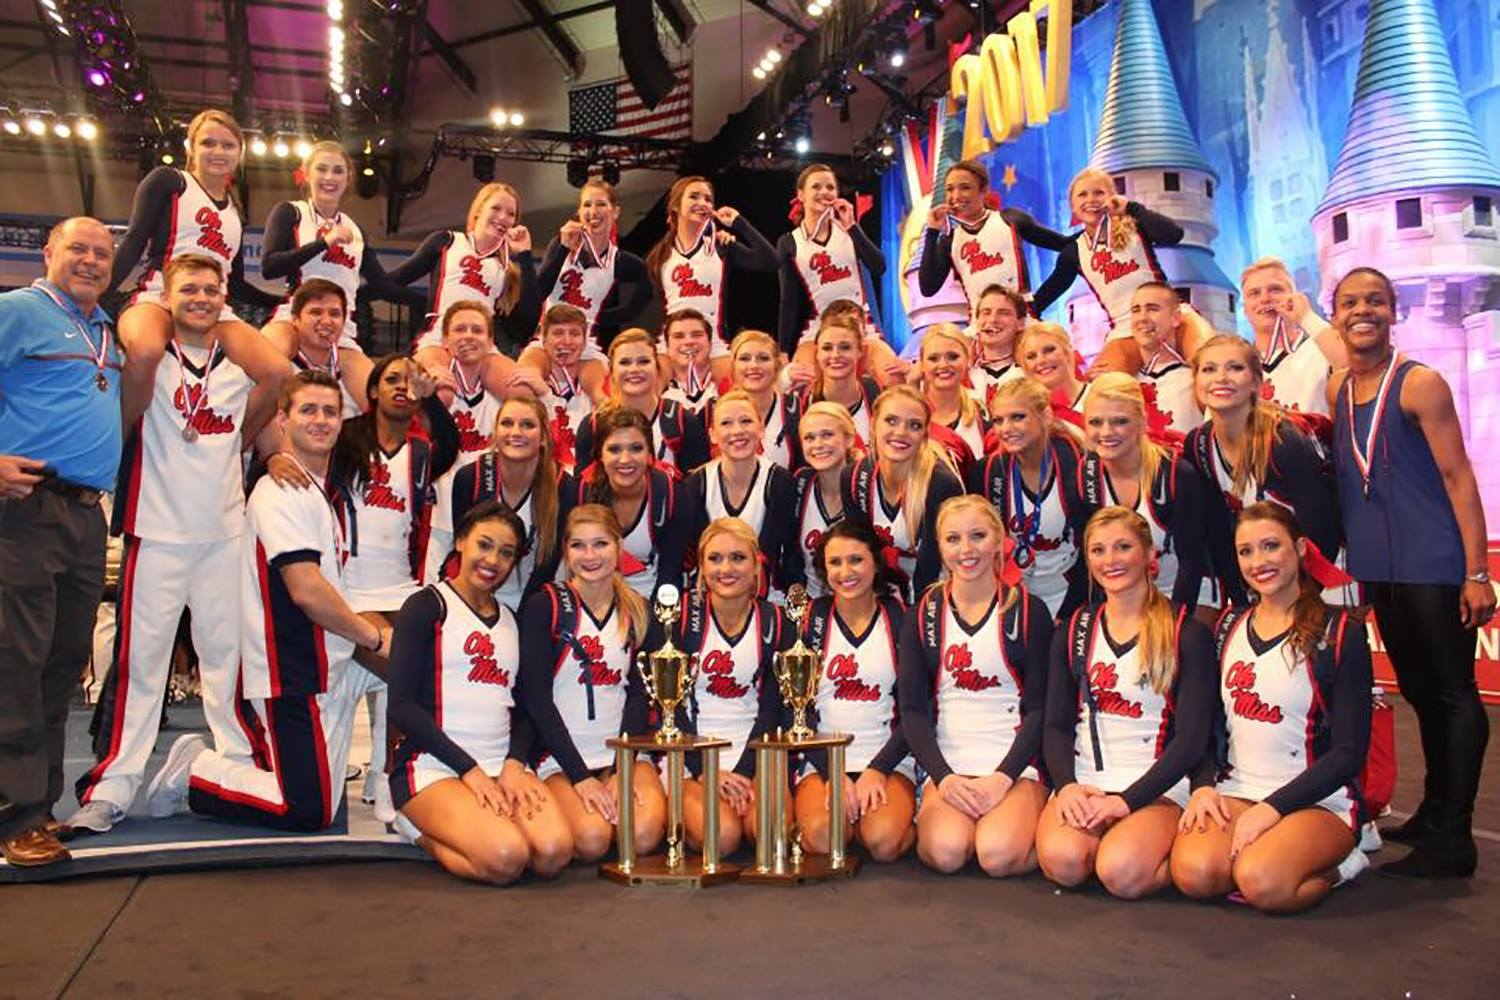 Ole Miss Cheer Wins Big at National Competition in Orlando